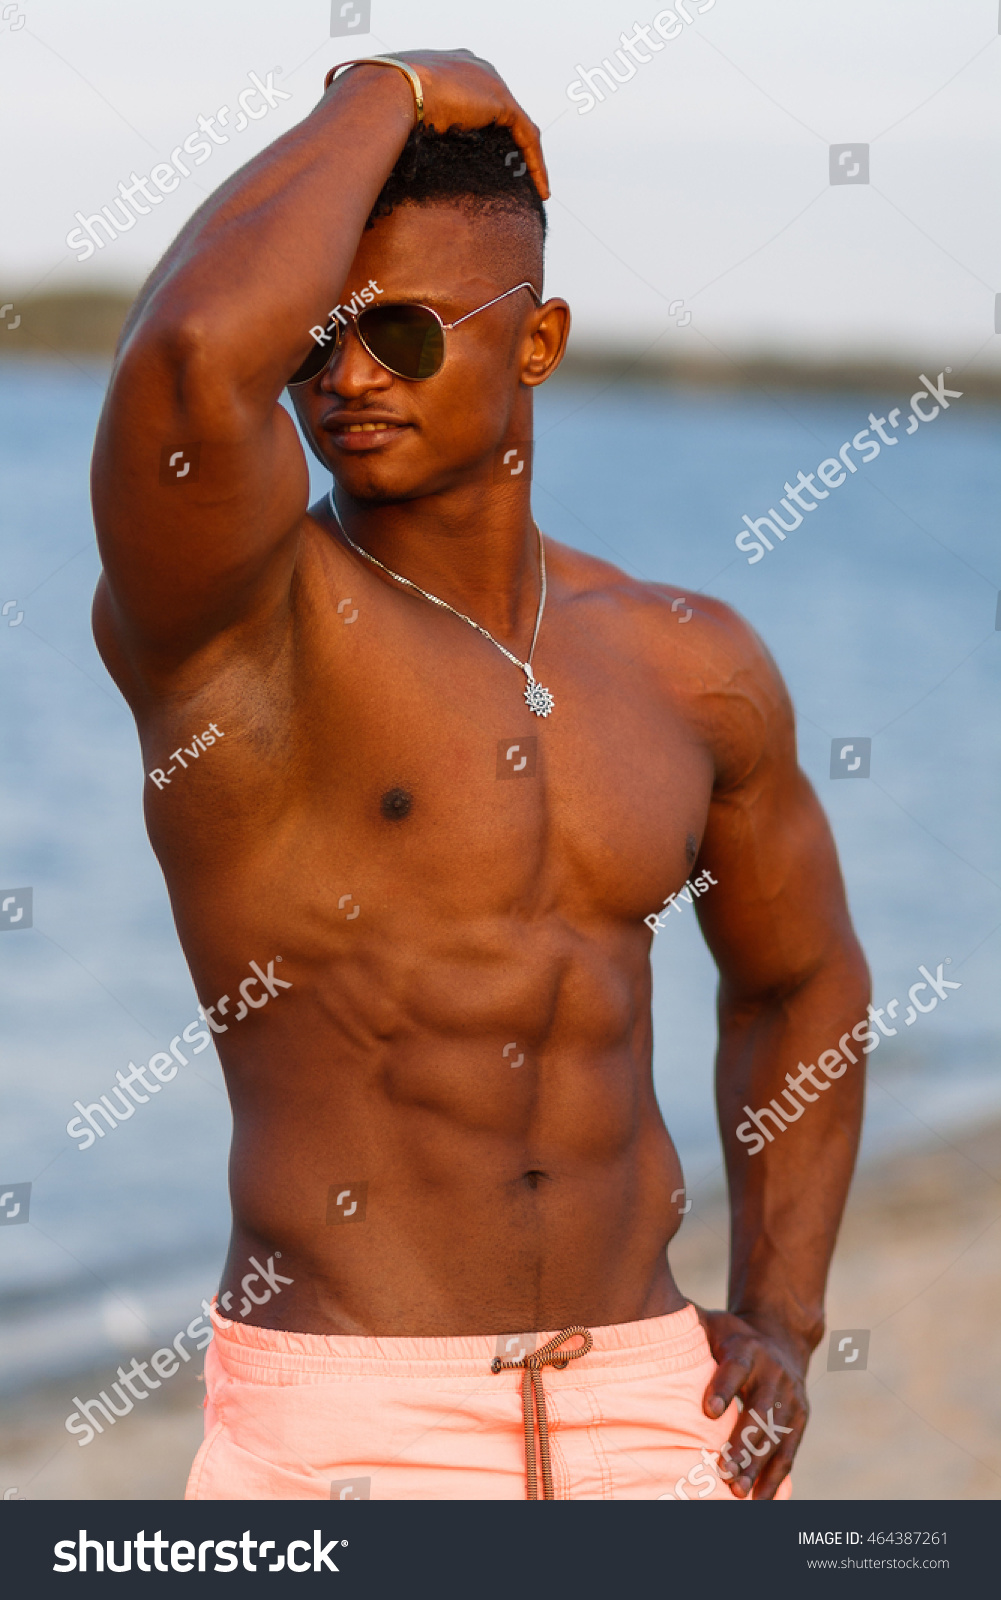 Hot black male nude